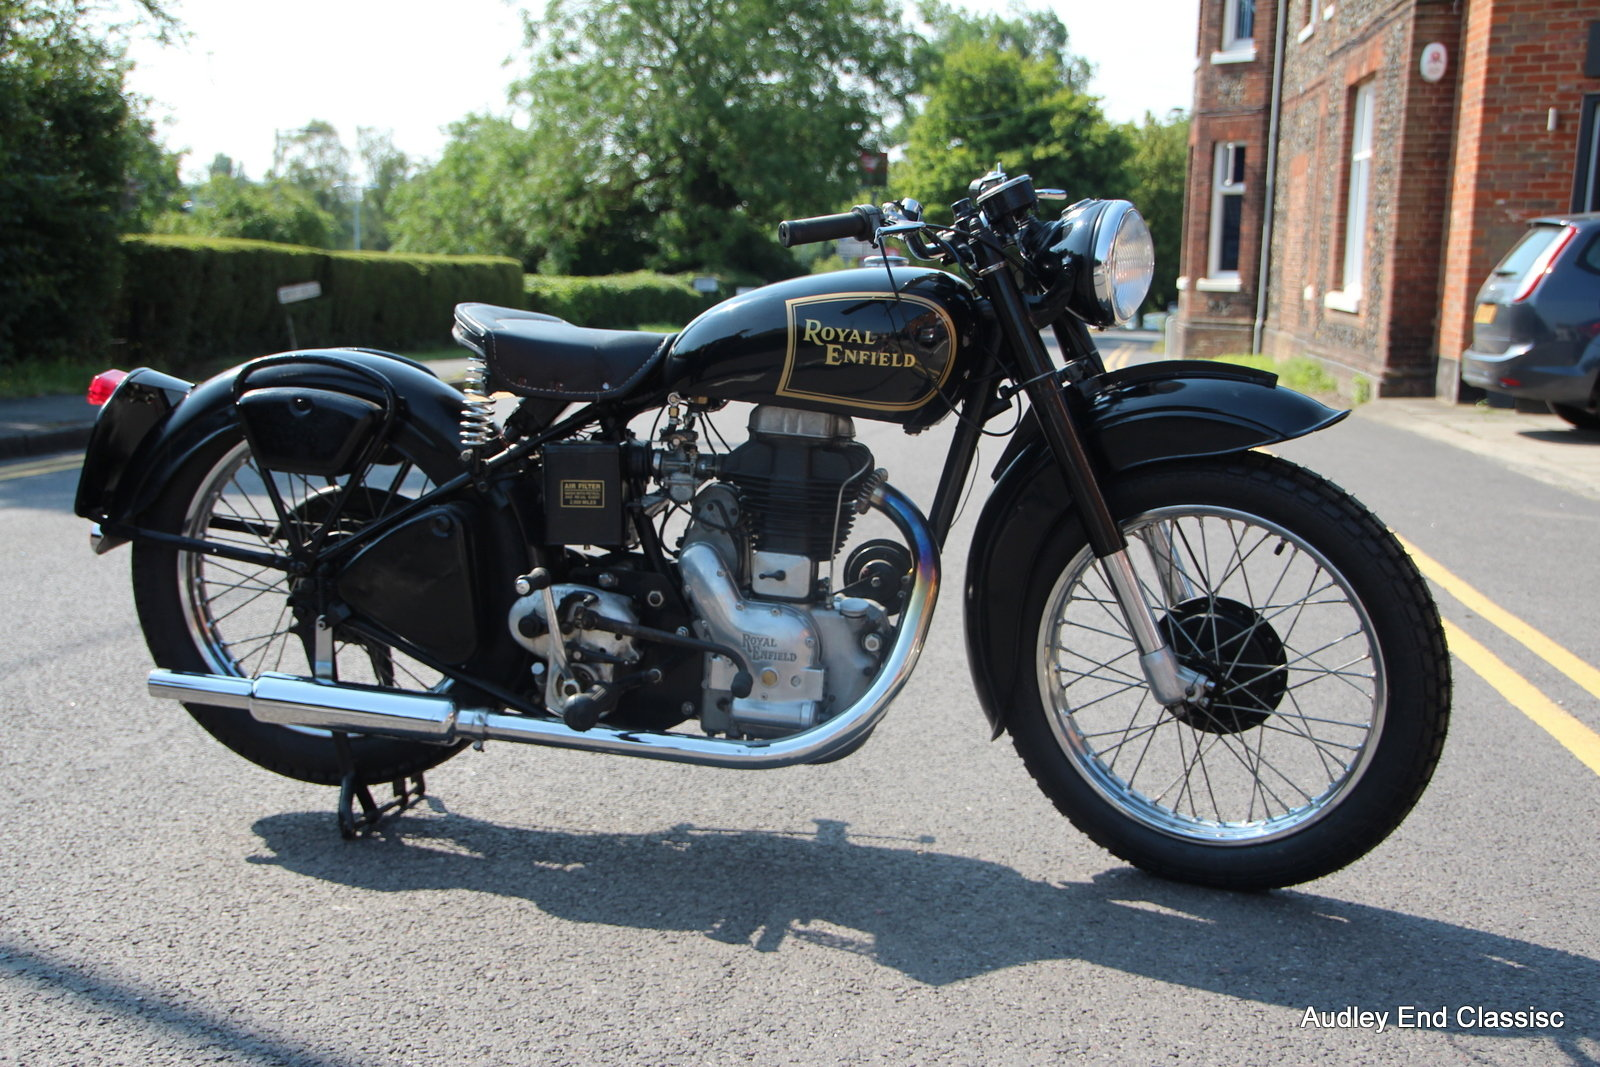 1948 ROYAL ENFIELD MODEL G 350 For Sale (picture 1 of 4)